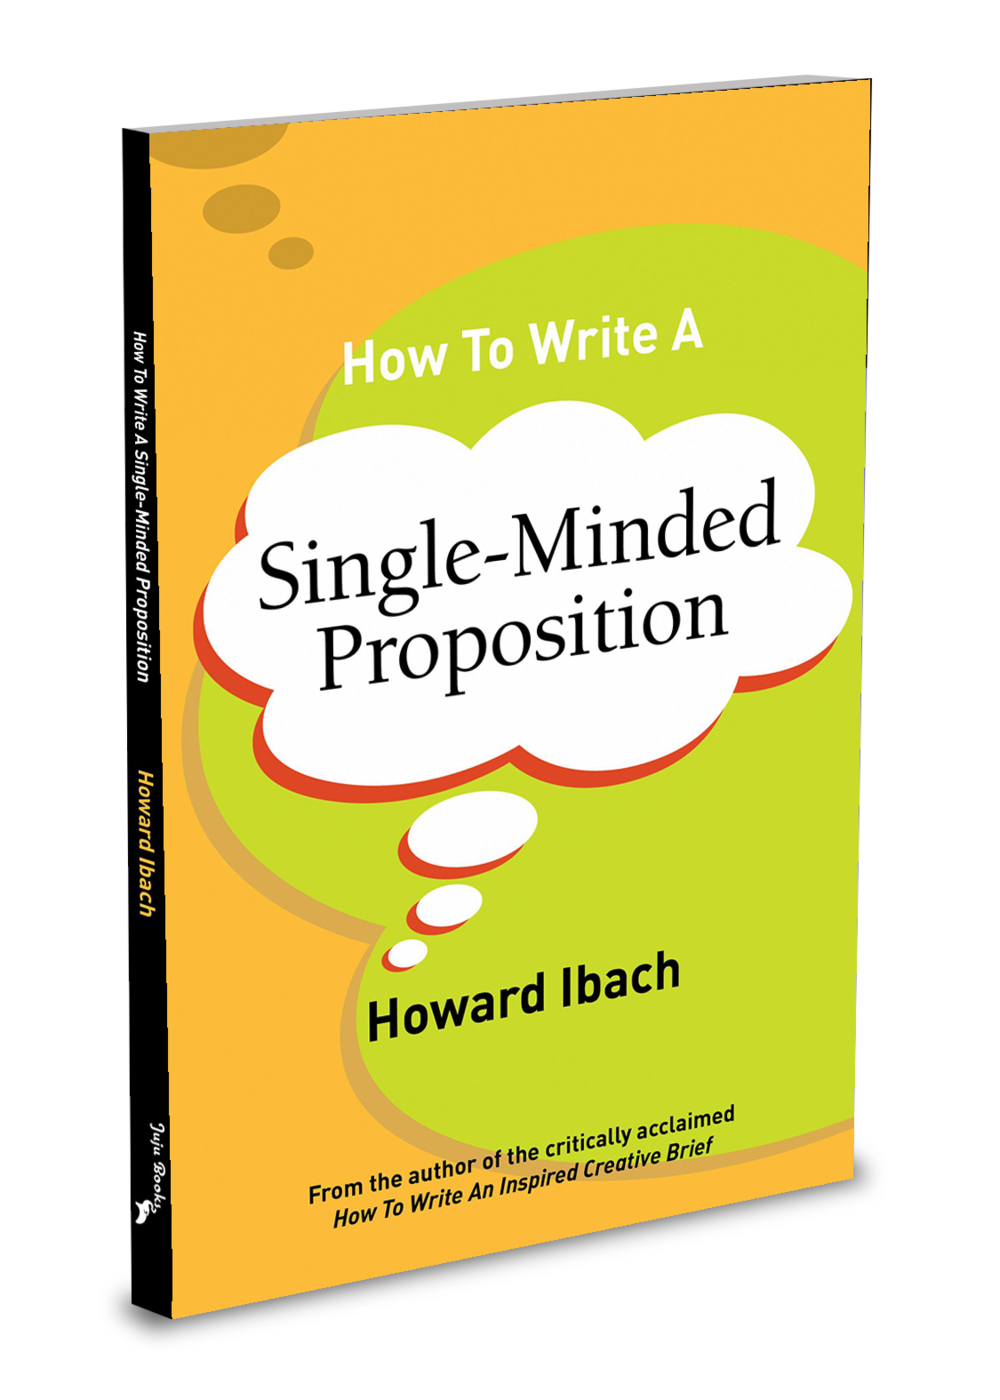 - Howard Ibach's new book is available online in May. He is the author of the critically acclaimed